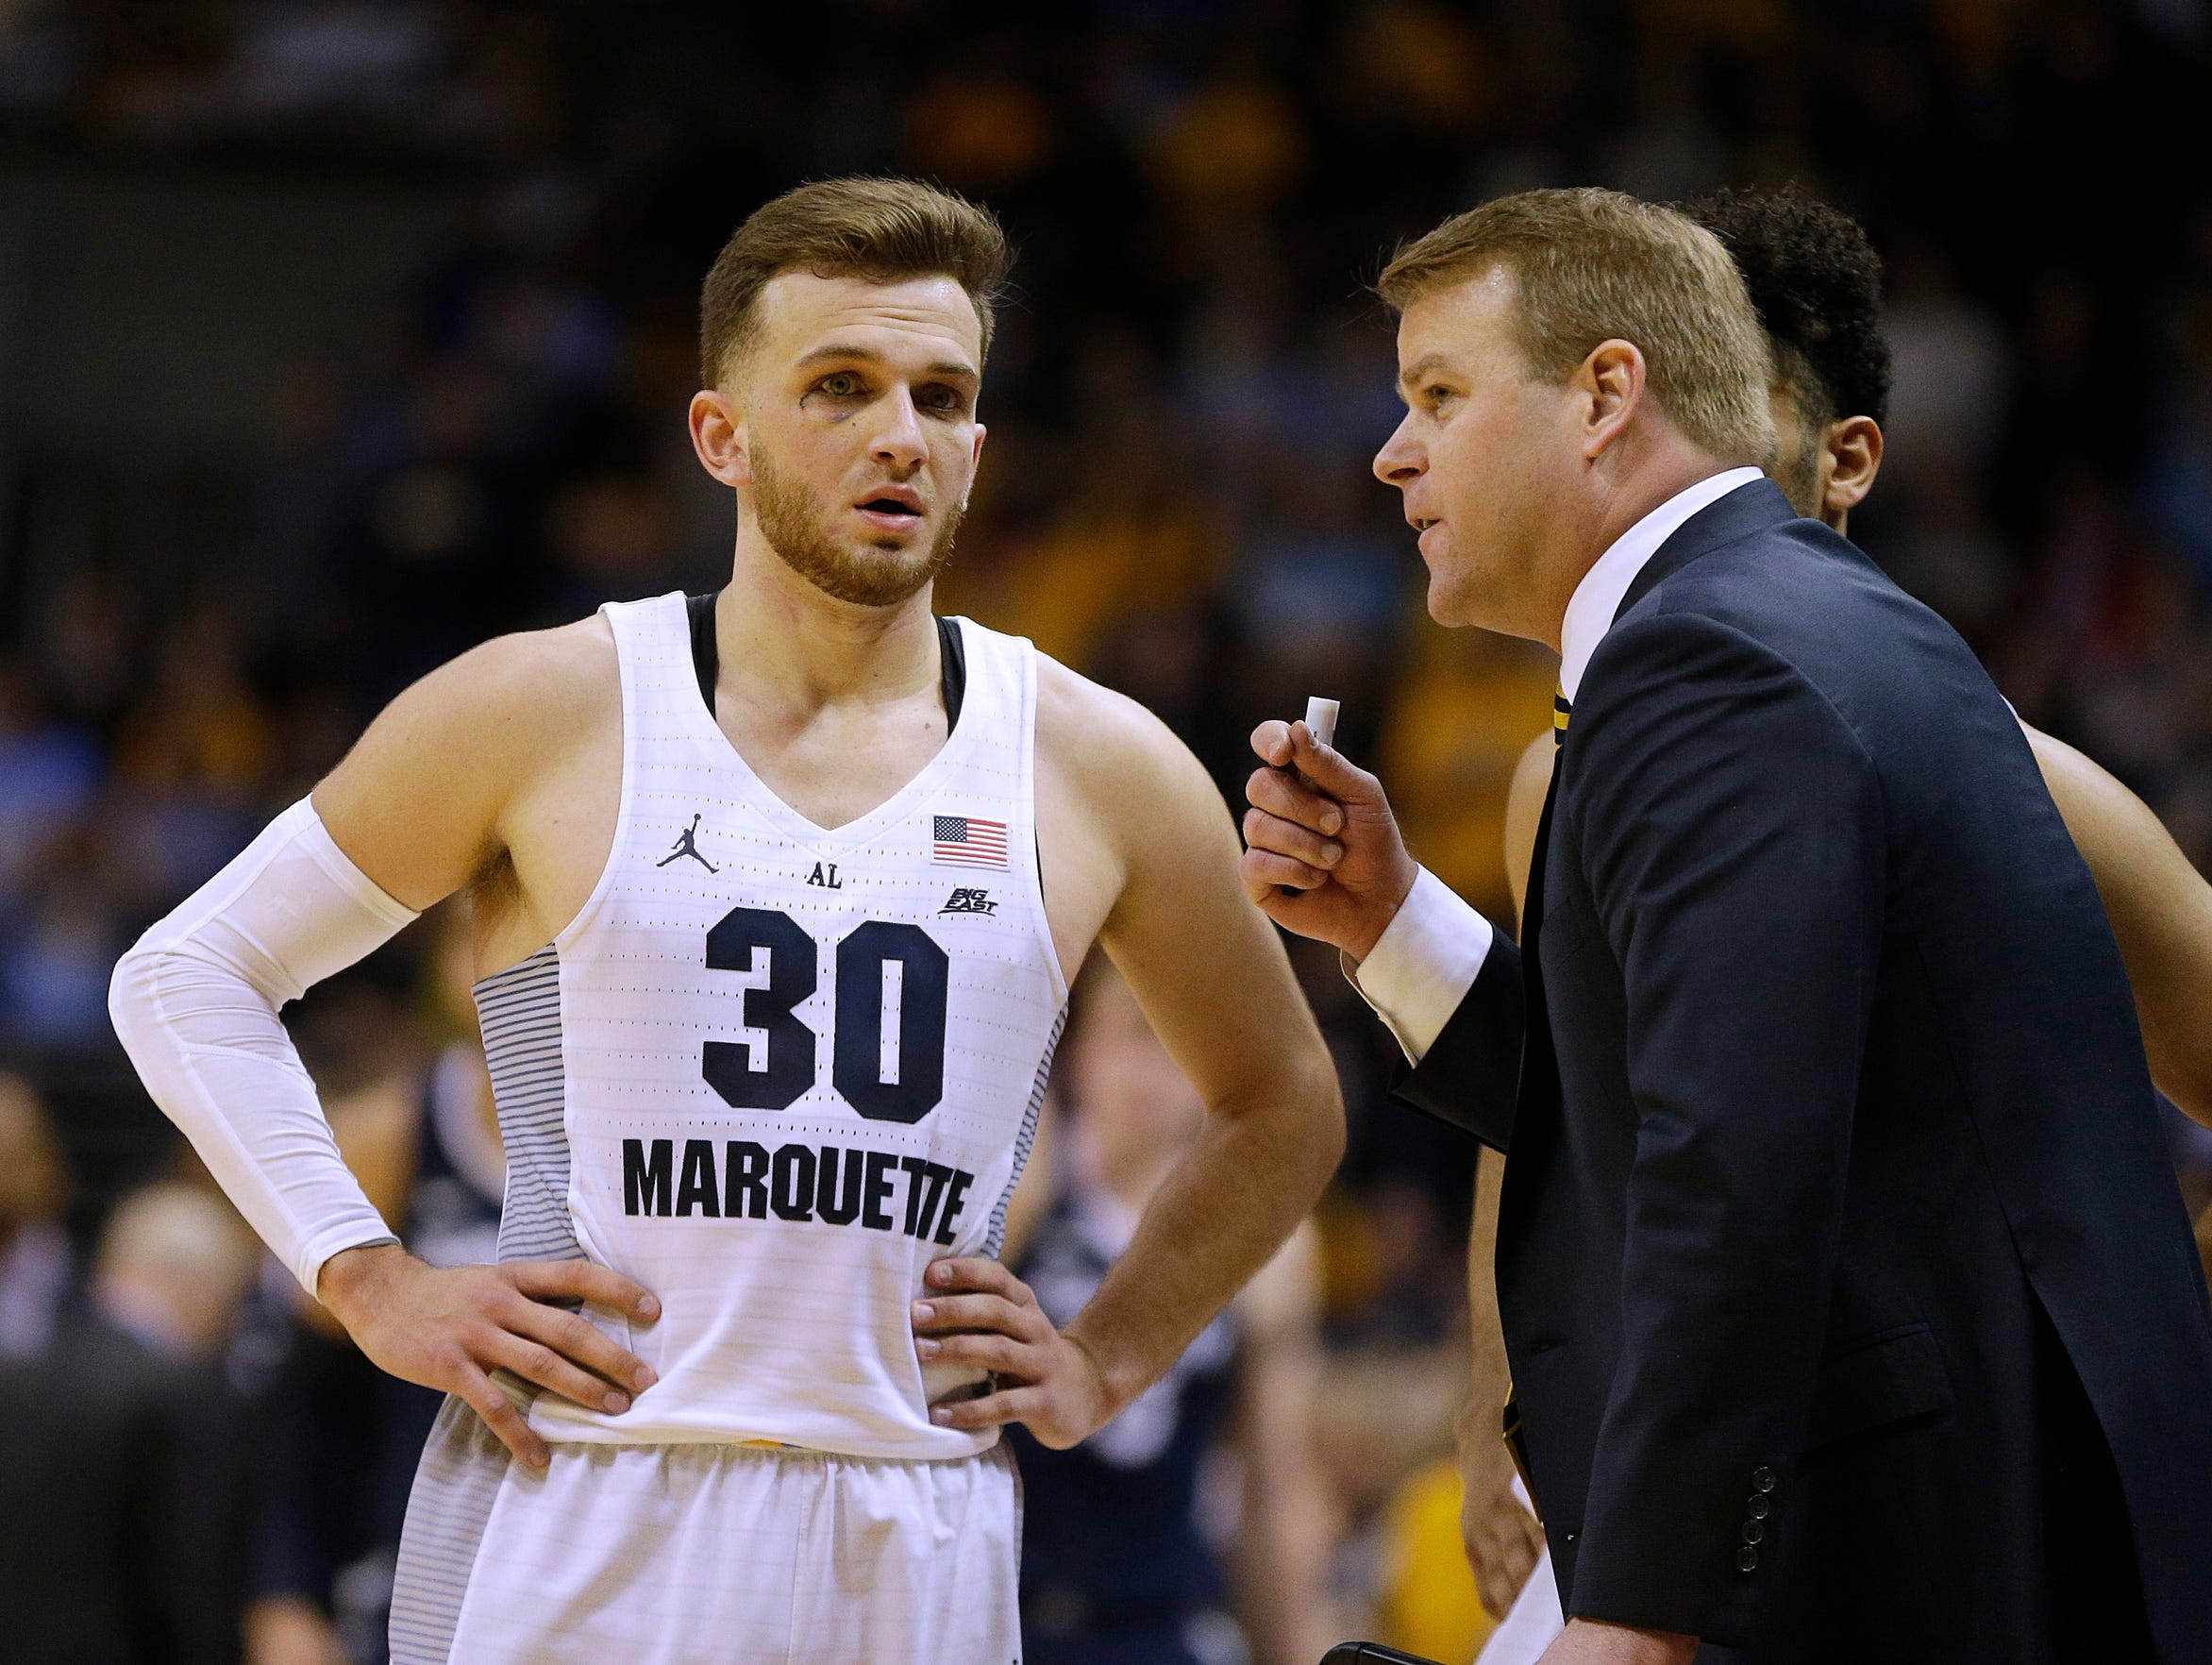 Marquette coach Steve Wojciechowski has given former Golden Eagles guard Andrew Rowsey advice about playing professional basketball overseas.